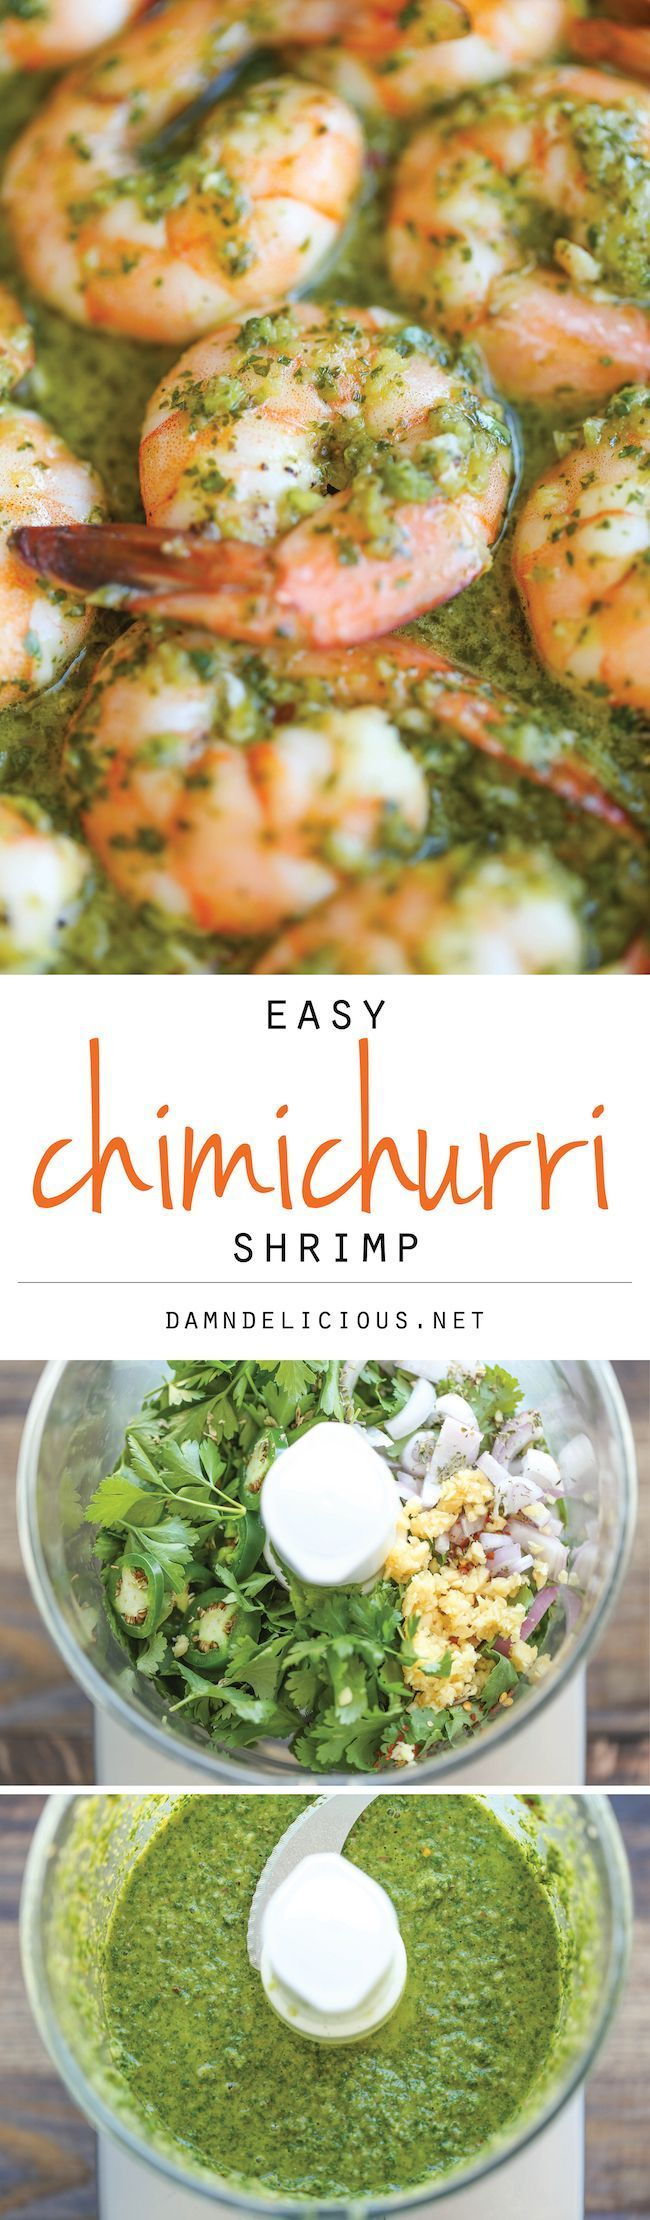 Easy Chimichurri Shrimp - The easiest, most simple 20-minute dish you will ever make. And this can be served either as an appetizer or light dinner!